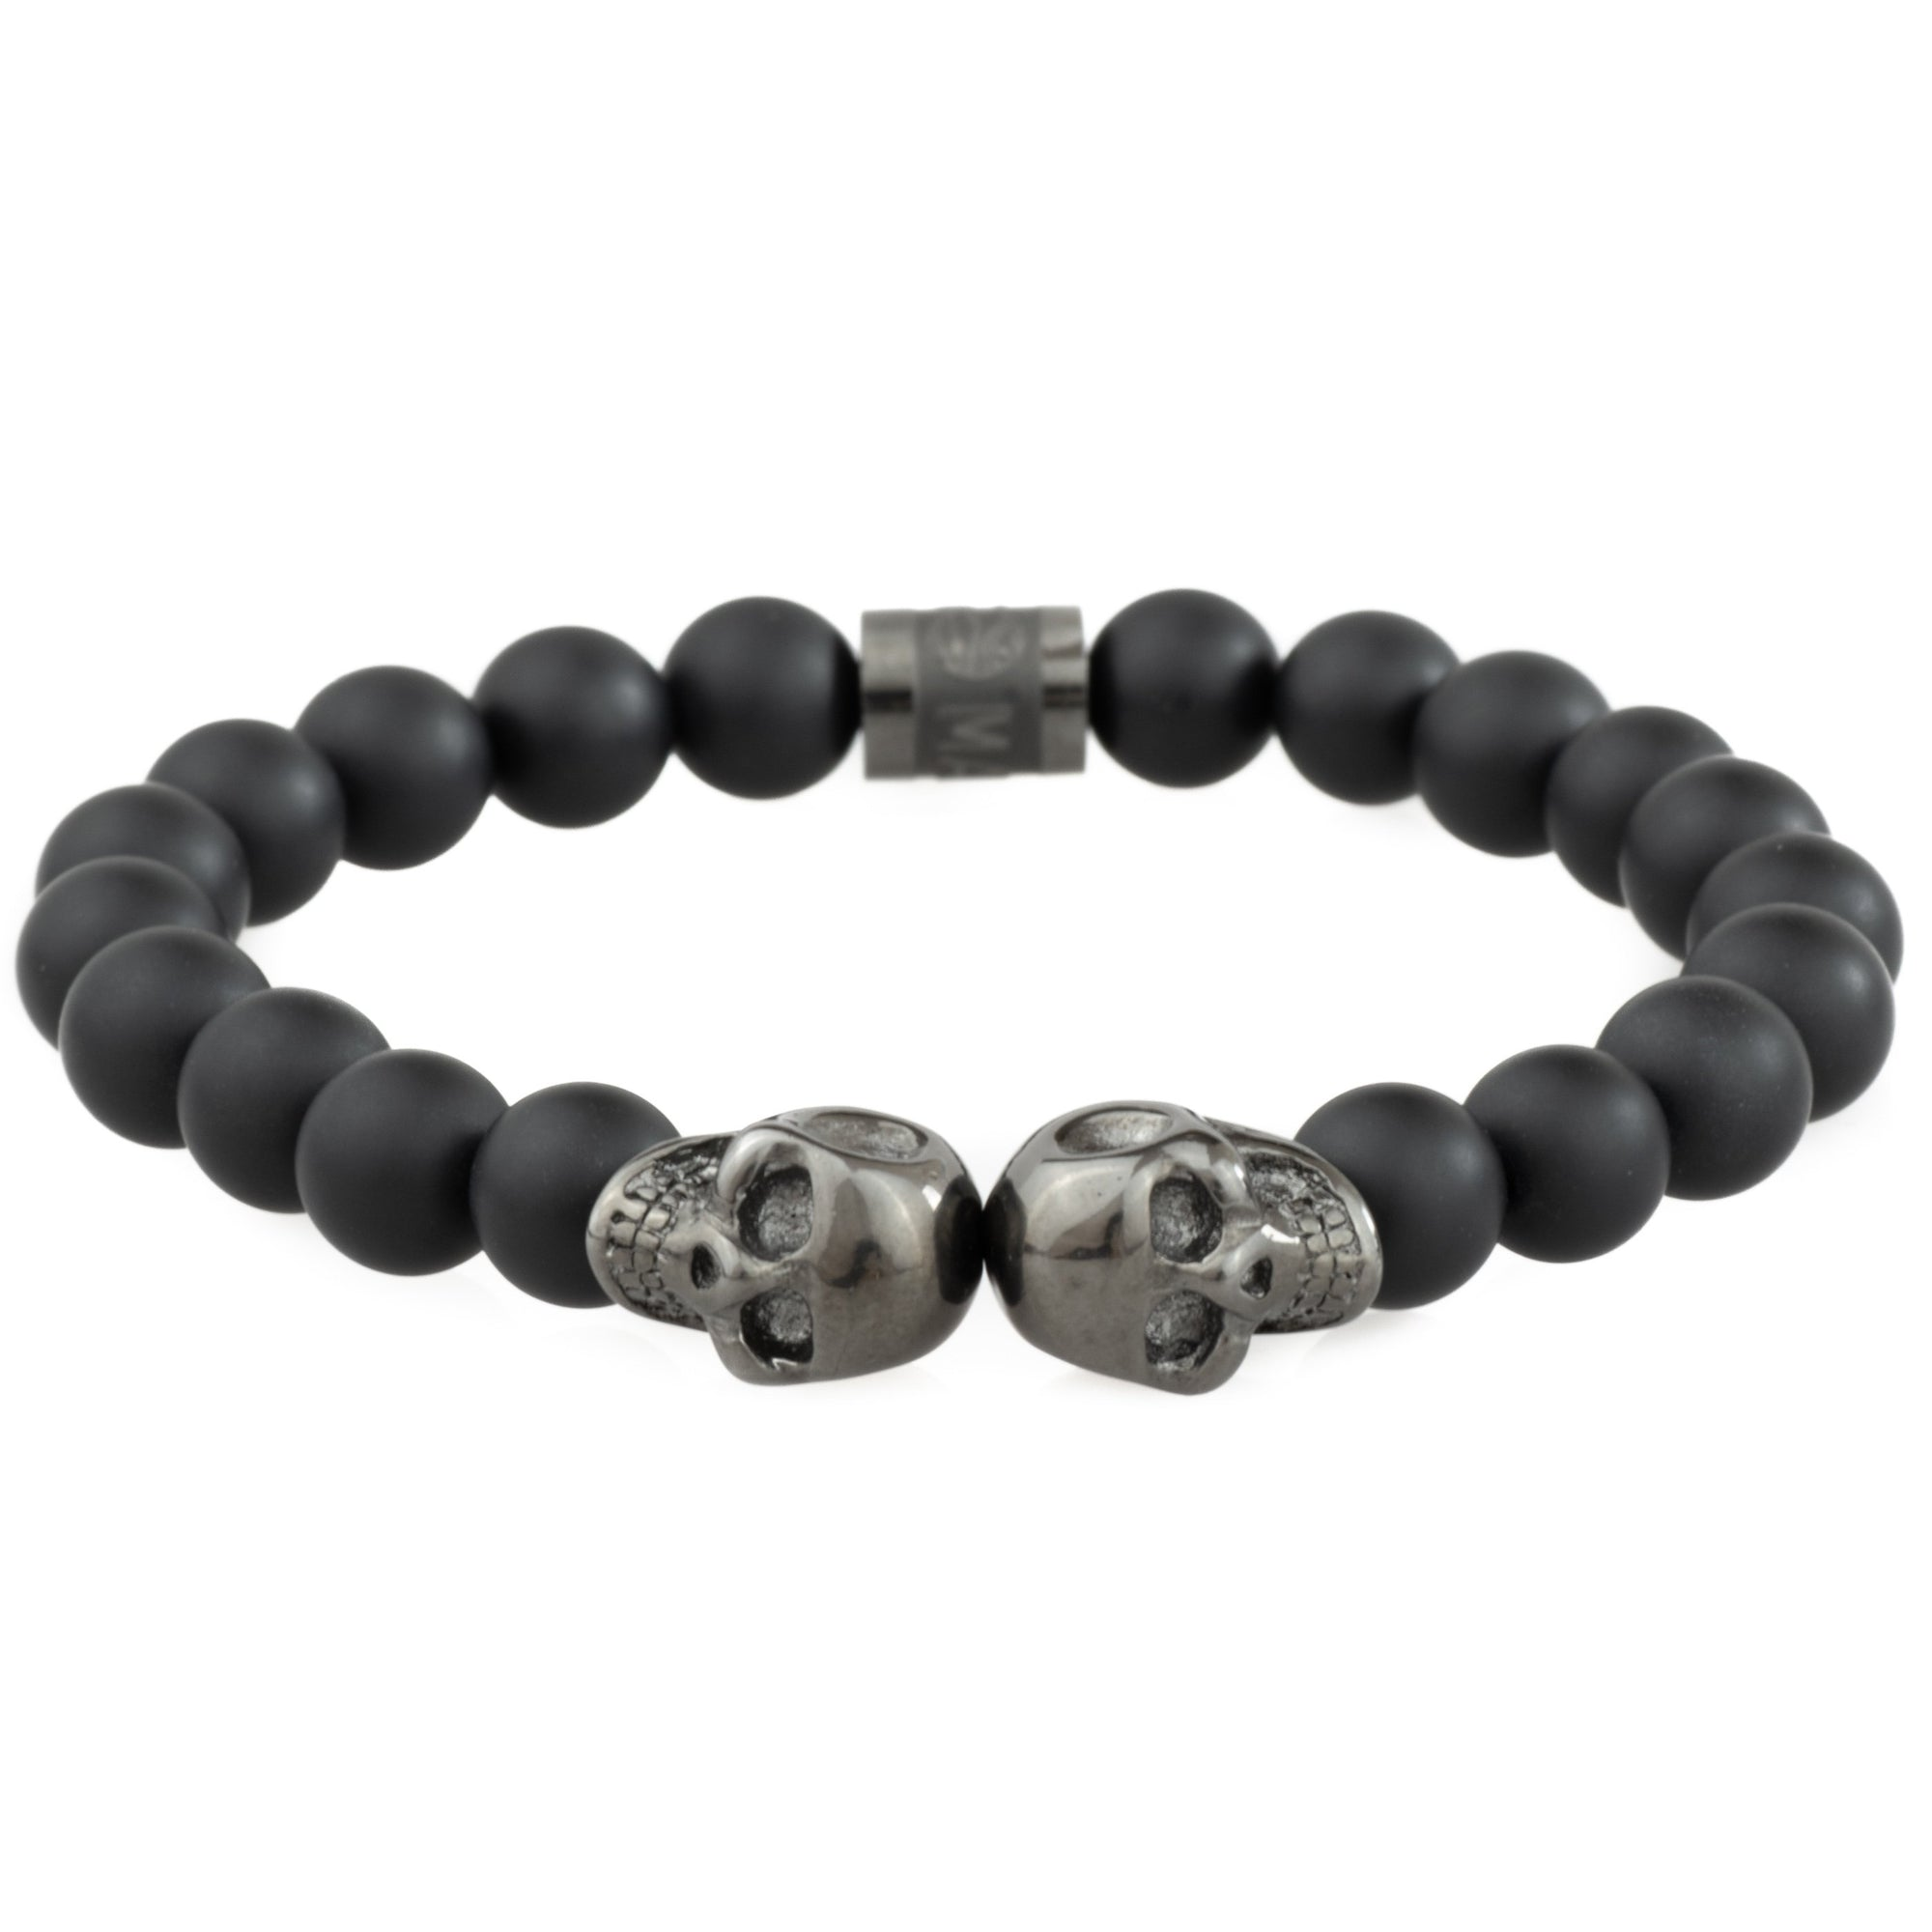 The Mortem Bracelet - Black - Marssos